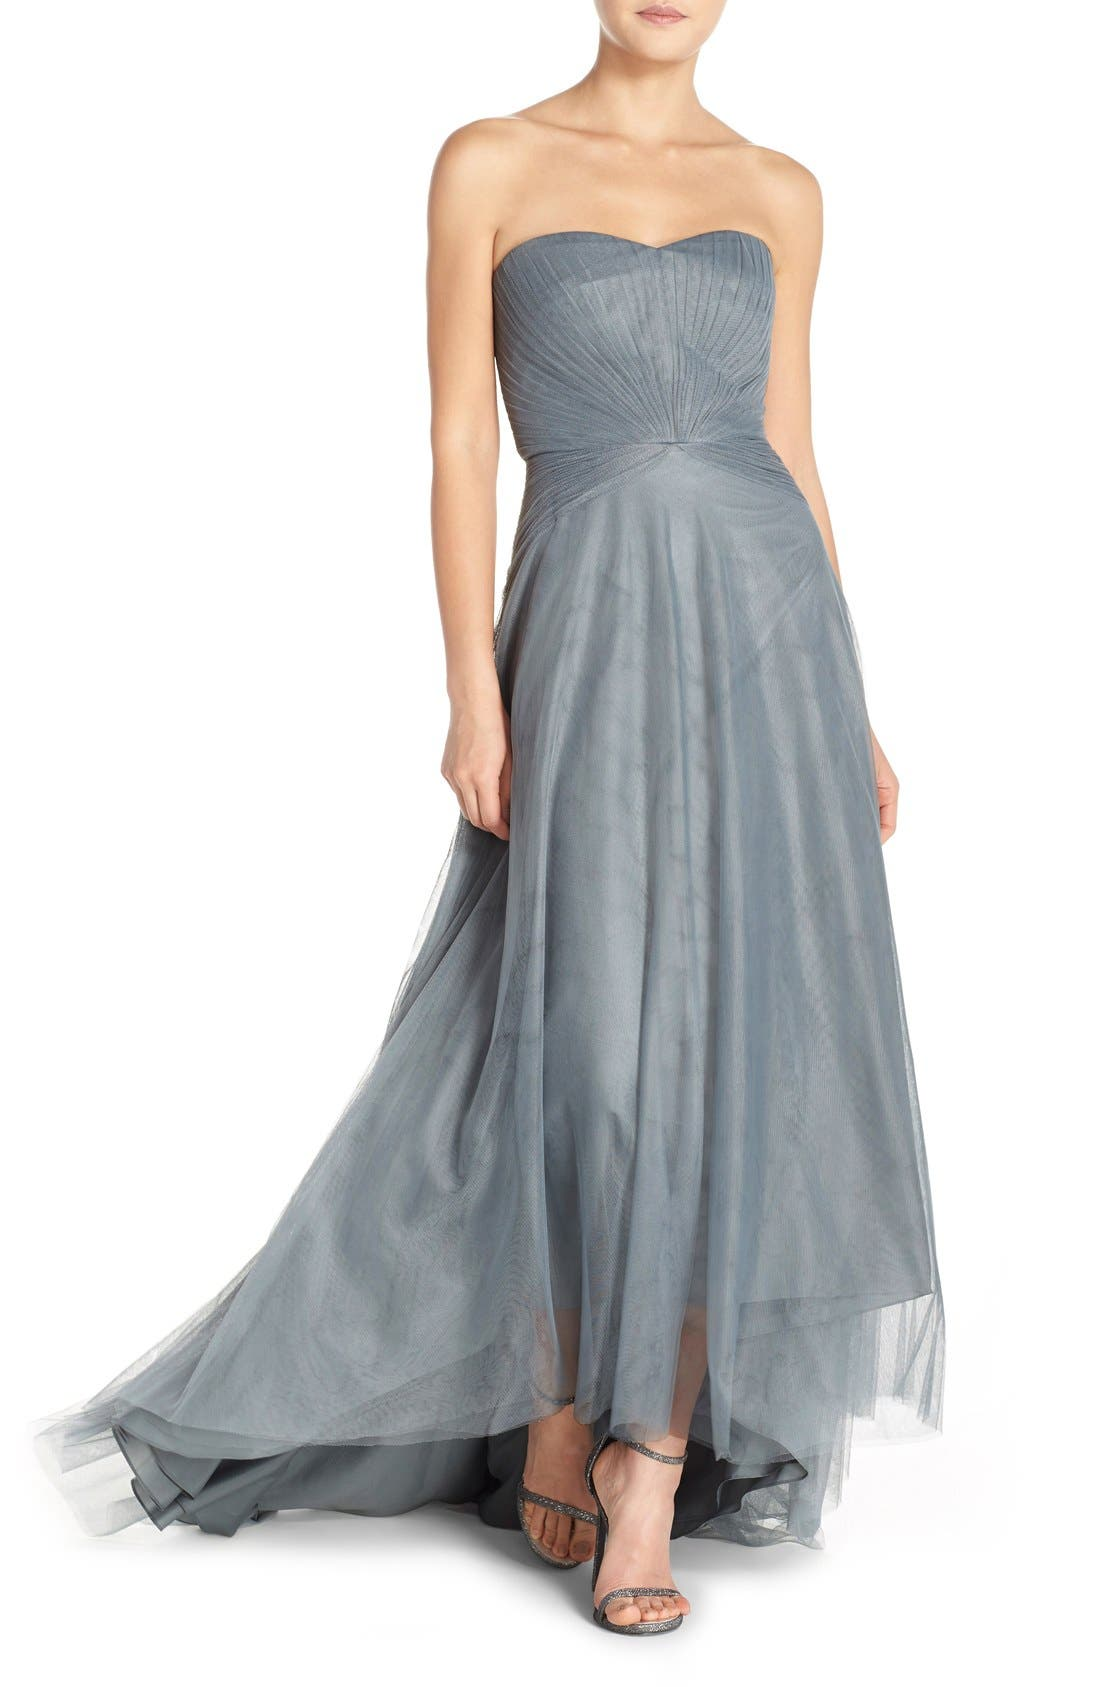 Alternate Image 1 Selected - Monique Lhuillier Bridesmaids Pleat Tulle Strapless Gown